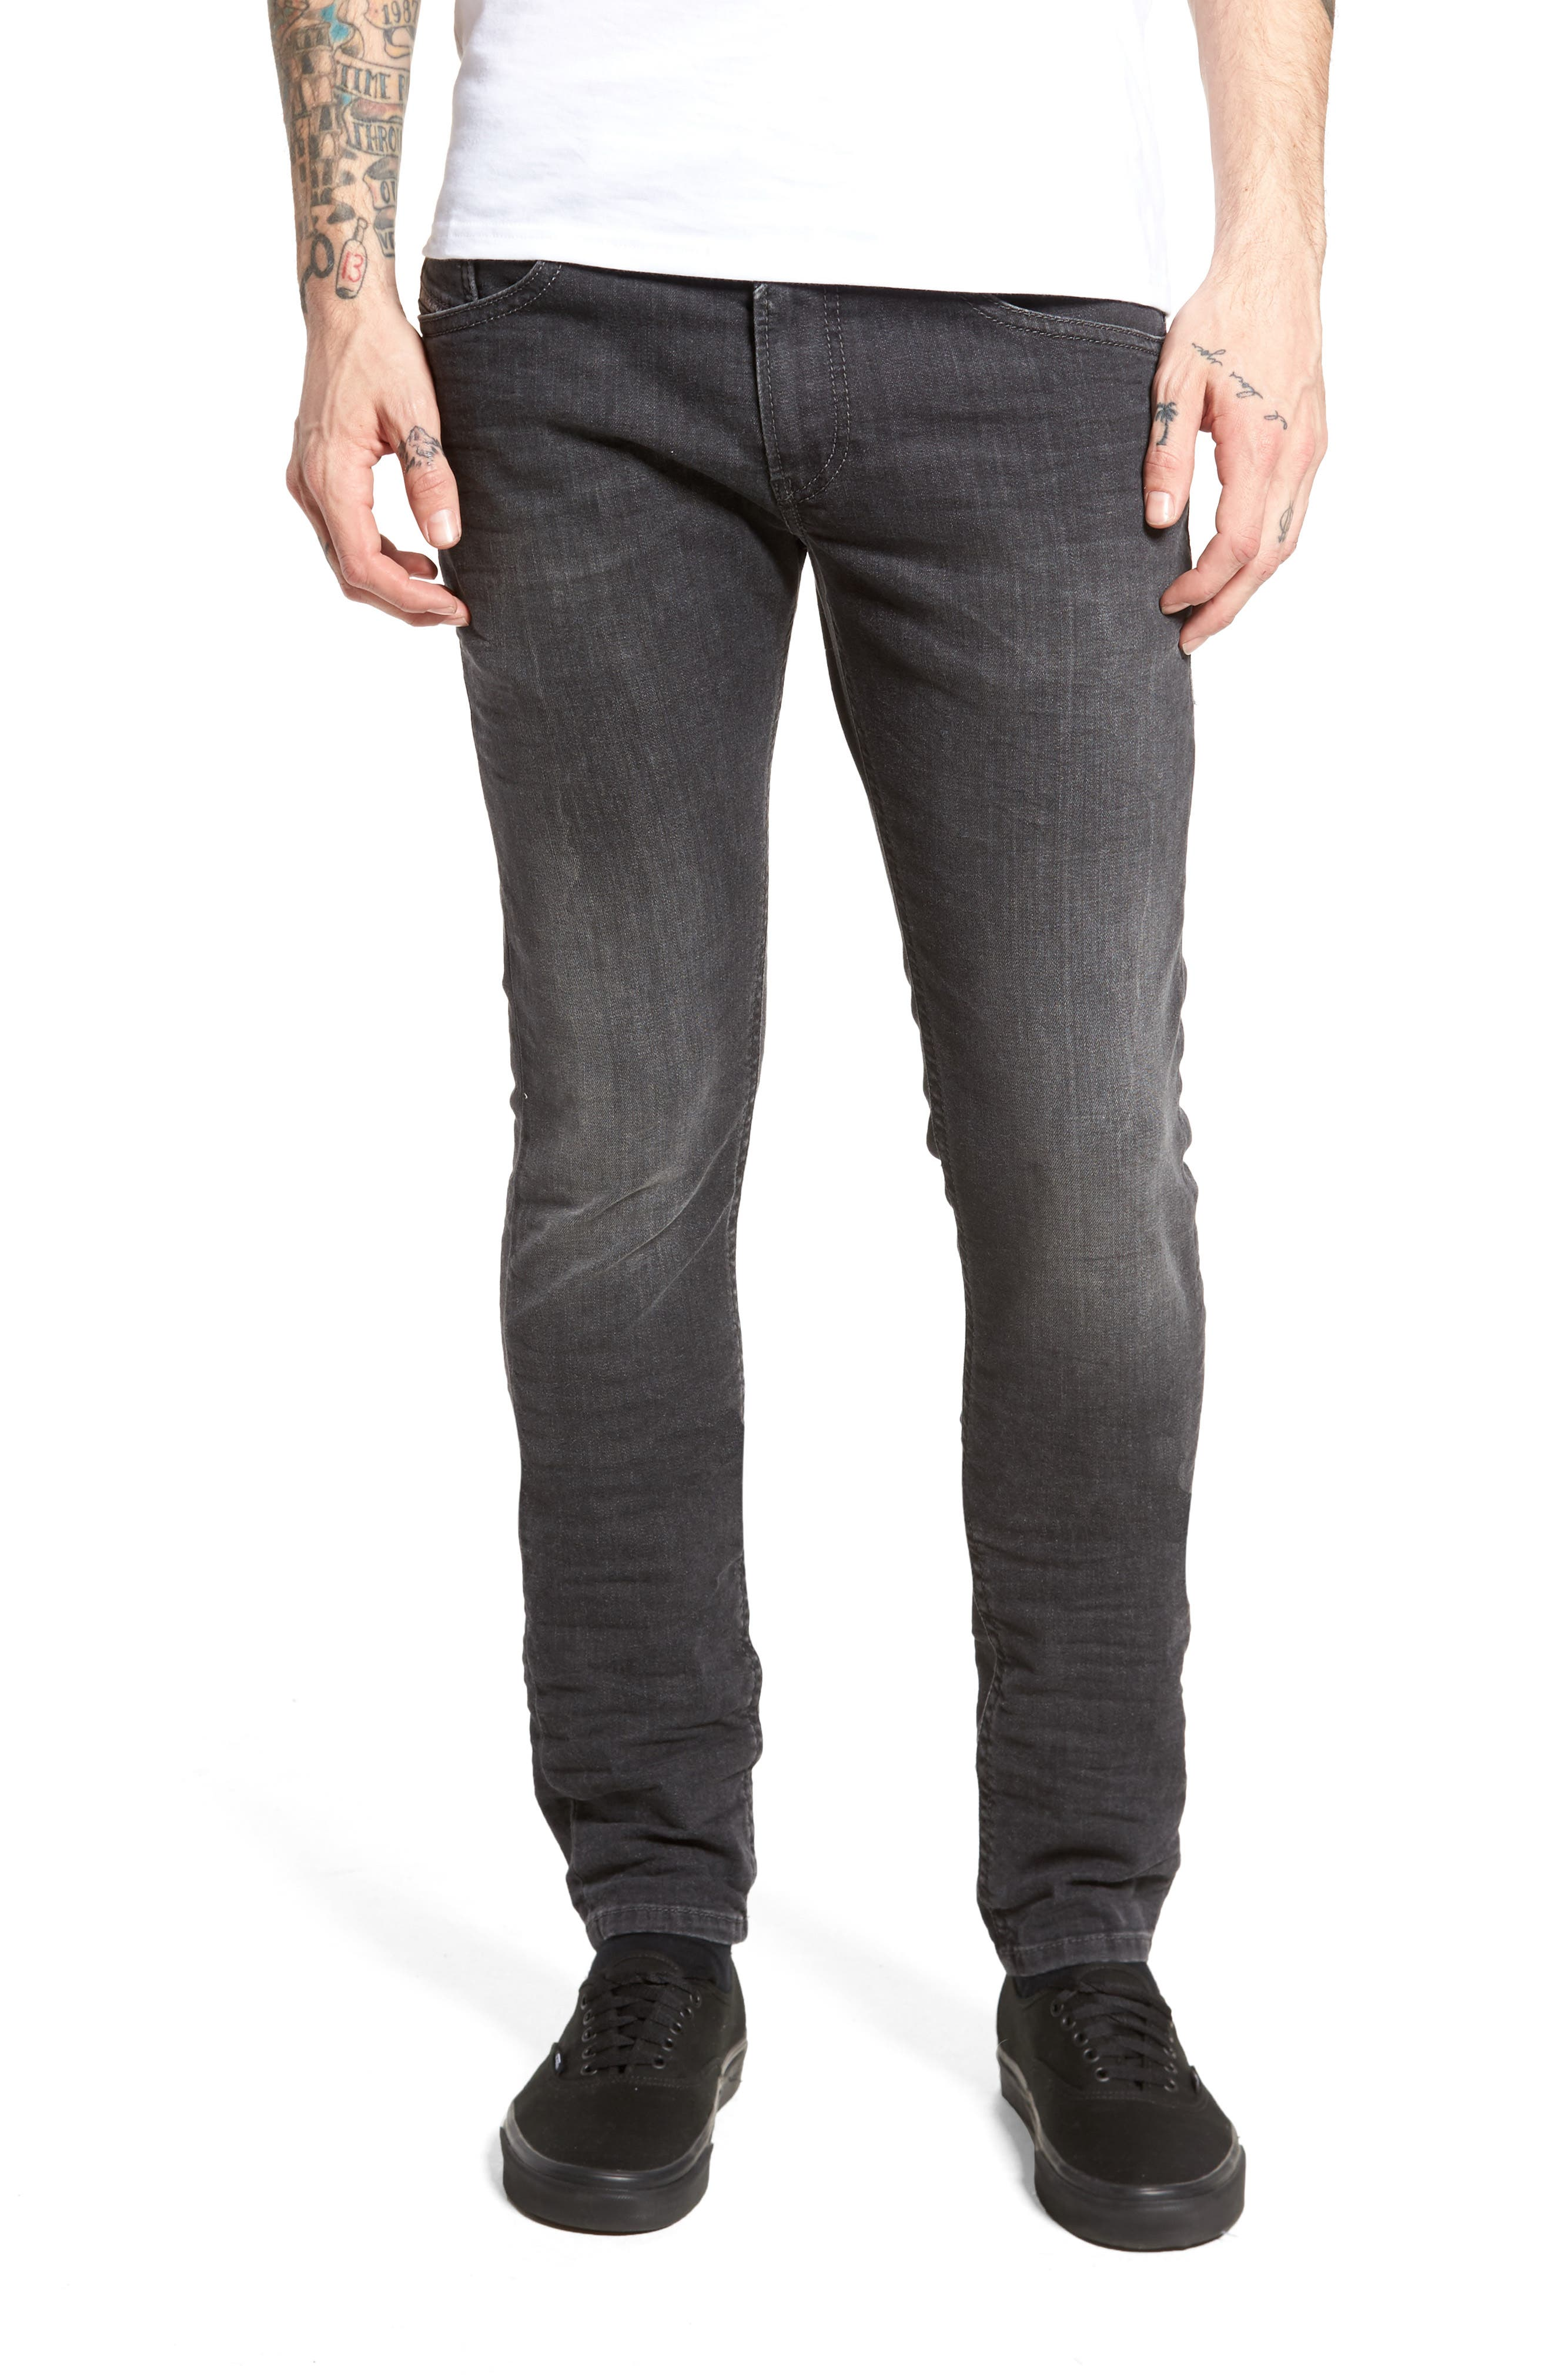 Thommer Slim Fit Jeans,                             Main thumbnail 1, color,                             001